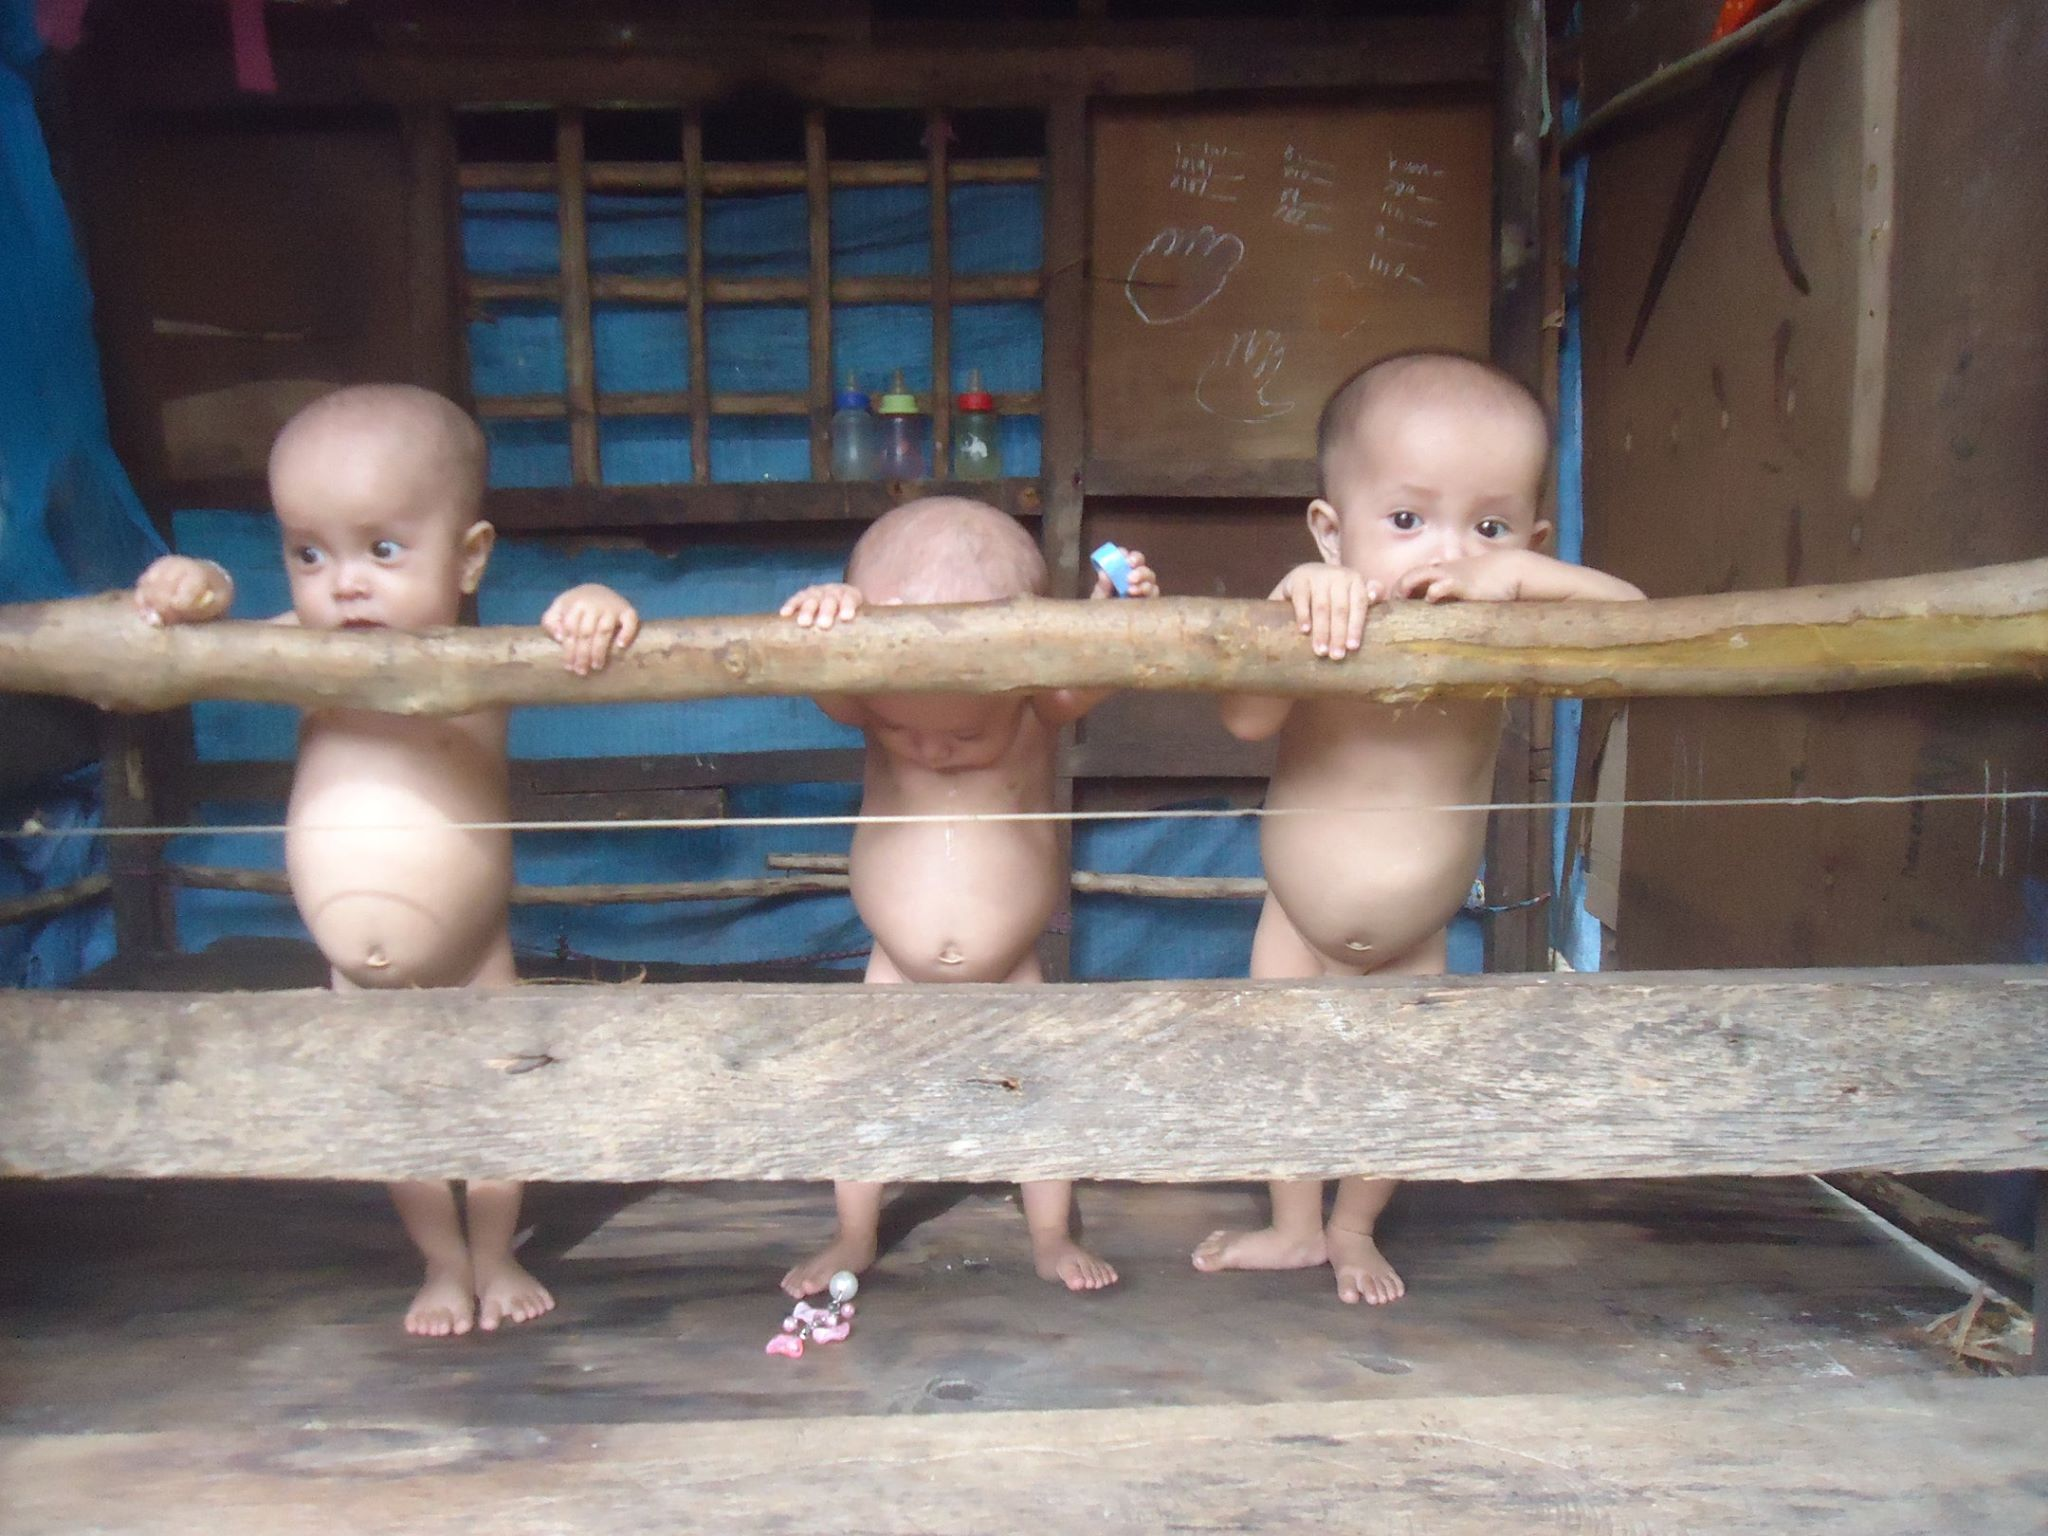 Image of Triplets with Severe Malnourishment